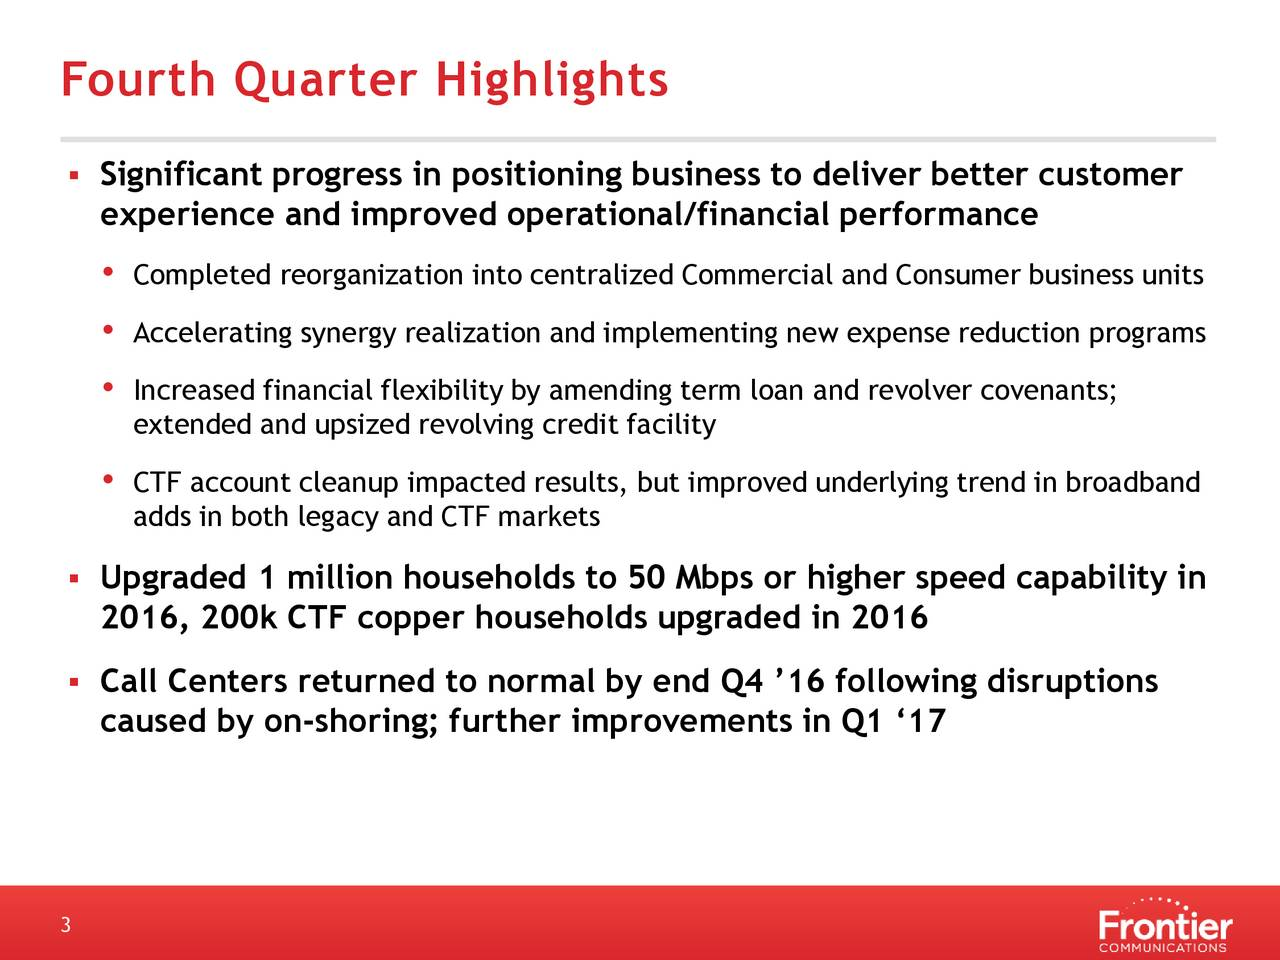 Significant progress in positioning business to deliver better customer experience and improved operational/financial performance Completed reorganization into centralized Commercial and Consumer business units Accelerating synergy realization and implementing new expense reduction programs Increased financial flexibility by amending term loan and revolver covenants; extended and upsized revolving credit facility CTF account cleanup impacted results, but improved underlying trend in broadband adds in both legacy and CTF markets Upgraded 1 million households to 50 Mbps or higher speed capability in 2016, 200k CTF copper households upgraded in 2016 Call Centers returned to normal by end Q4 16 following disruptions caused by on-shoring; further improvements in Q1 17 3